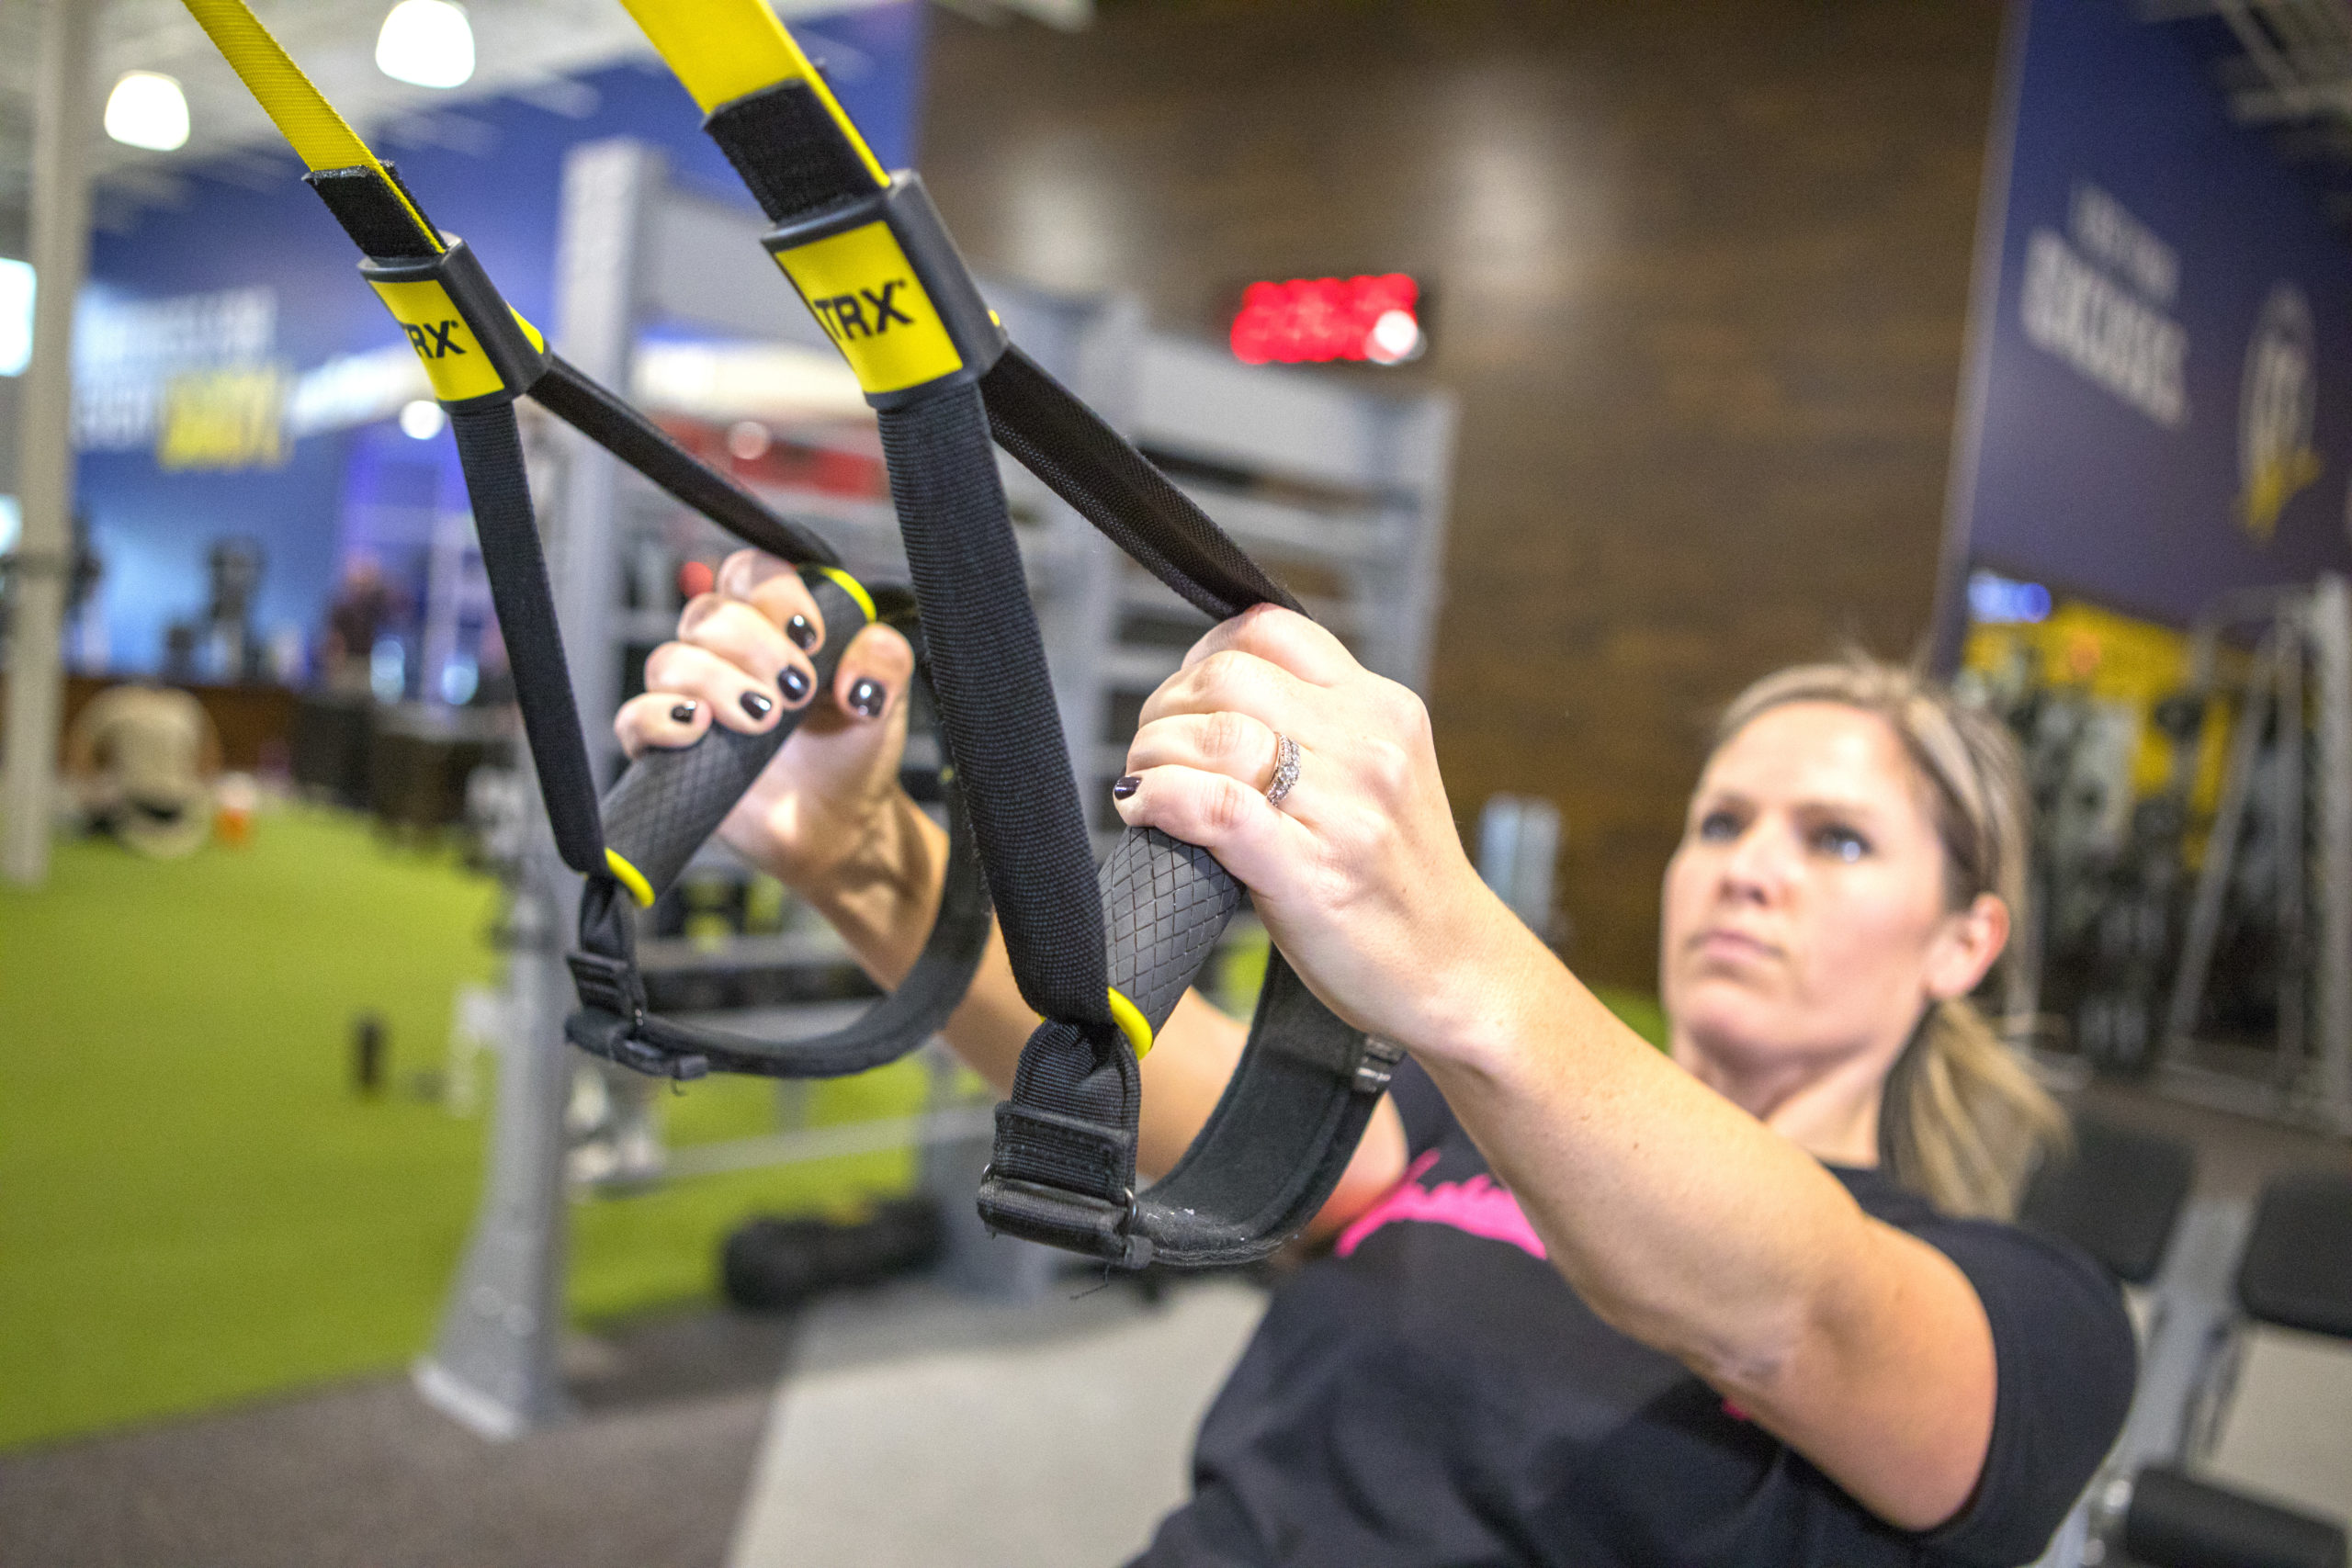 Woman working out on an exercise machine